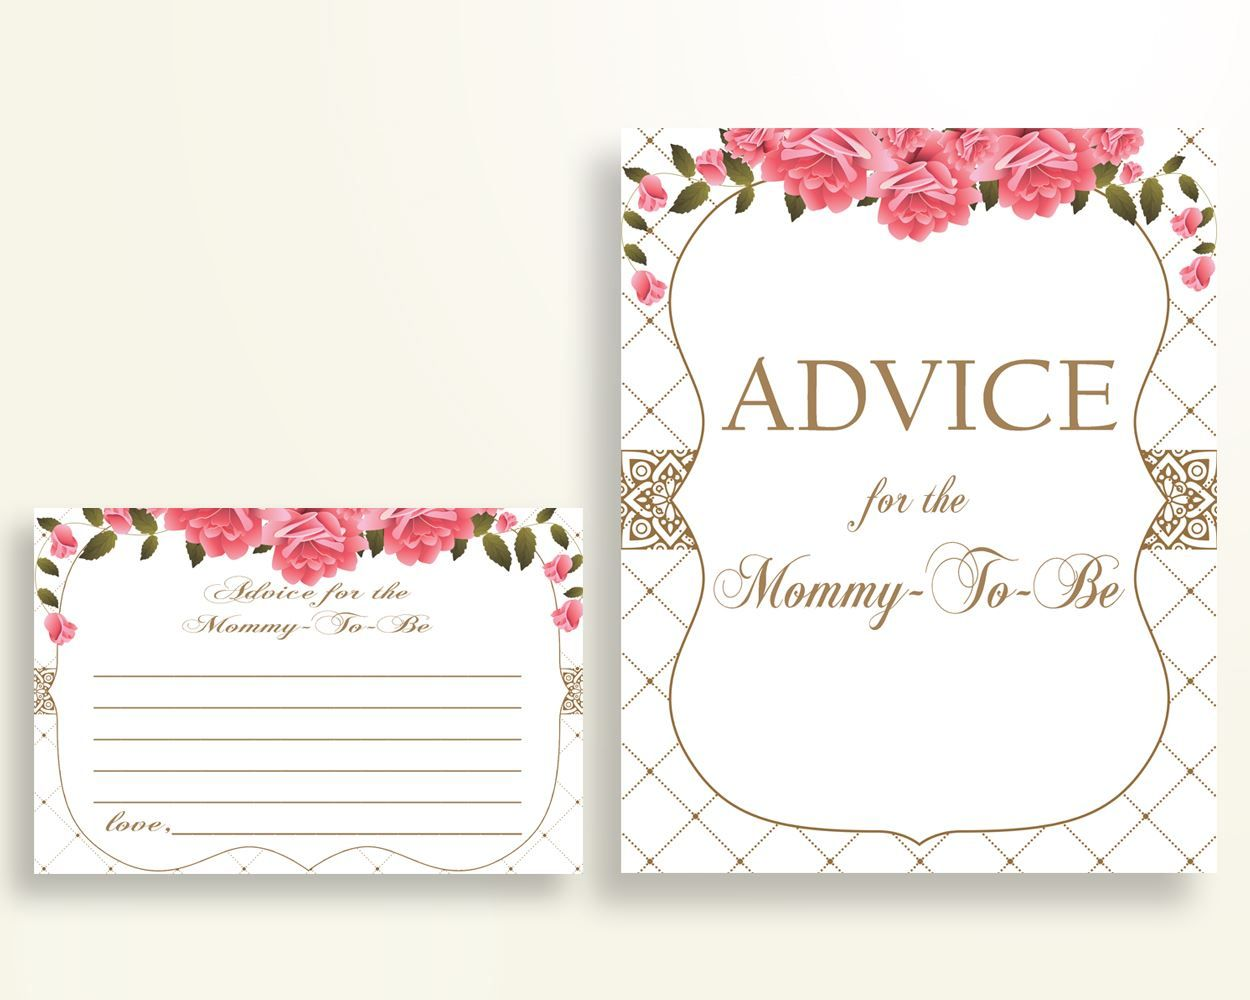 Advice Cards Baby Shower Advice Cards Roses Baby Shower Advice ...